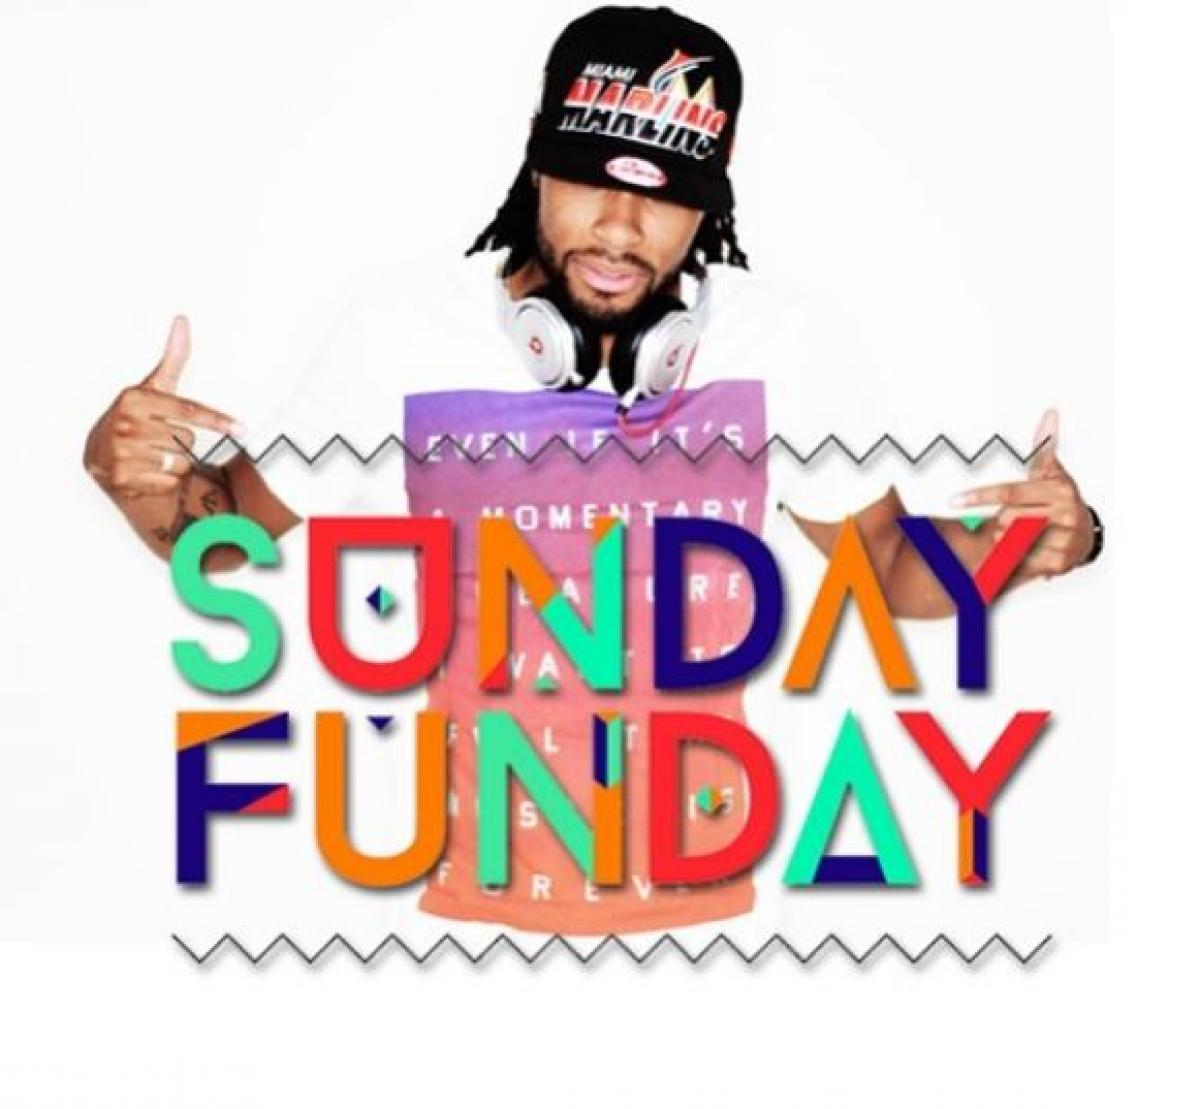 Sunday Funday flyer or graphic.